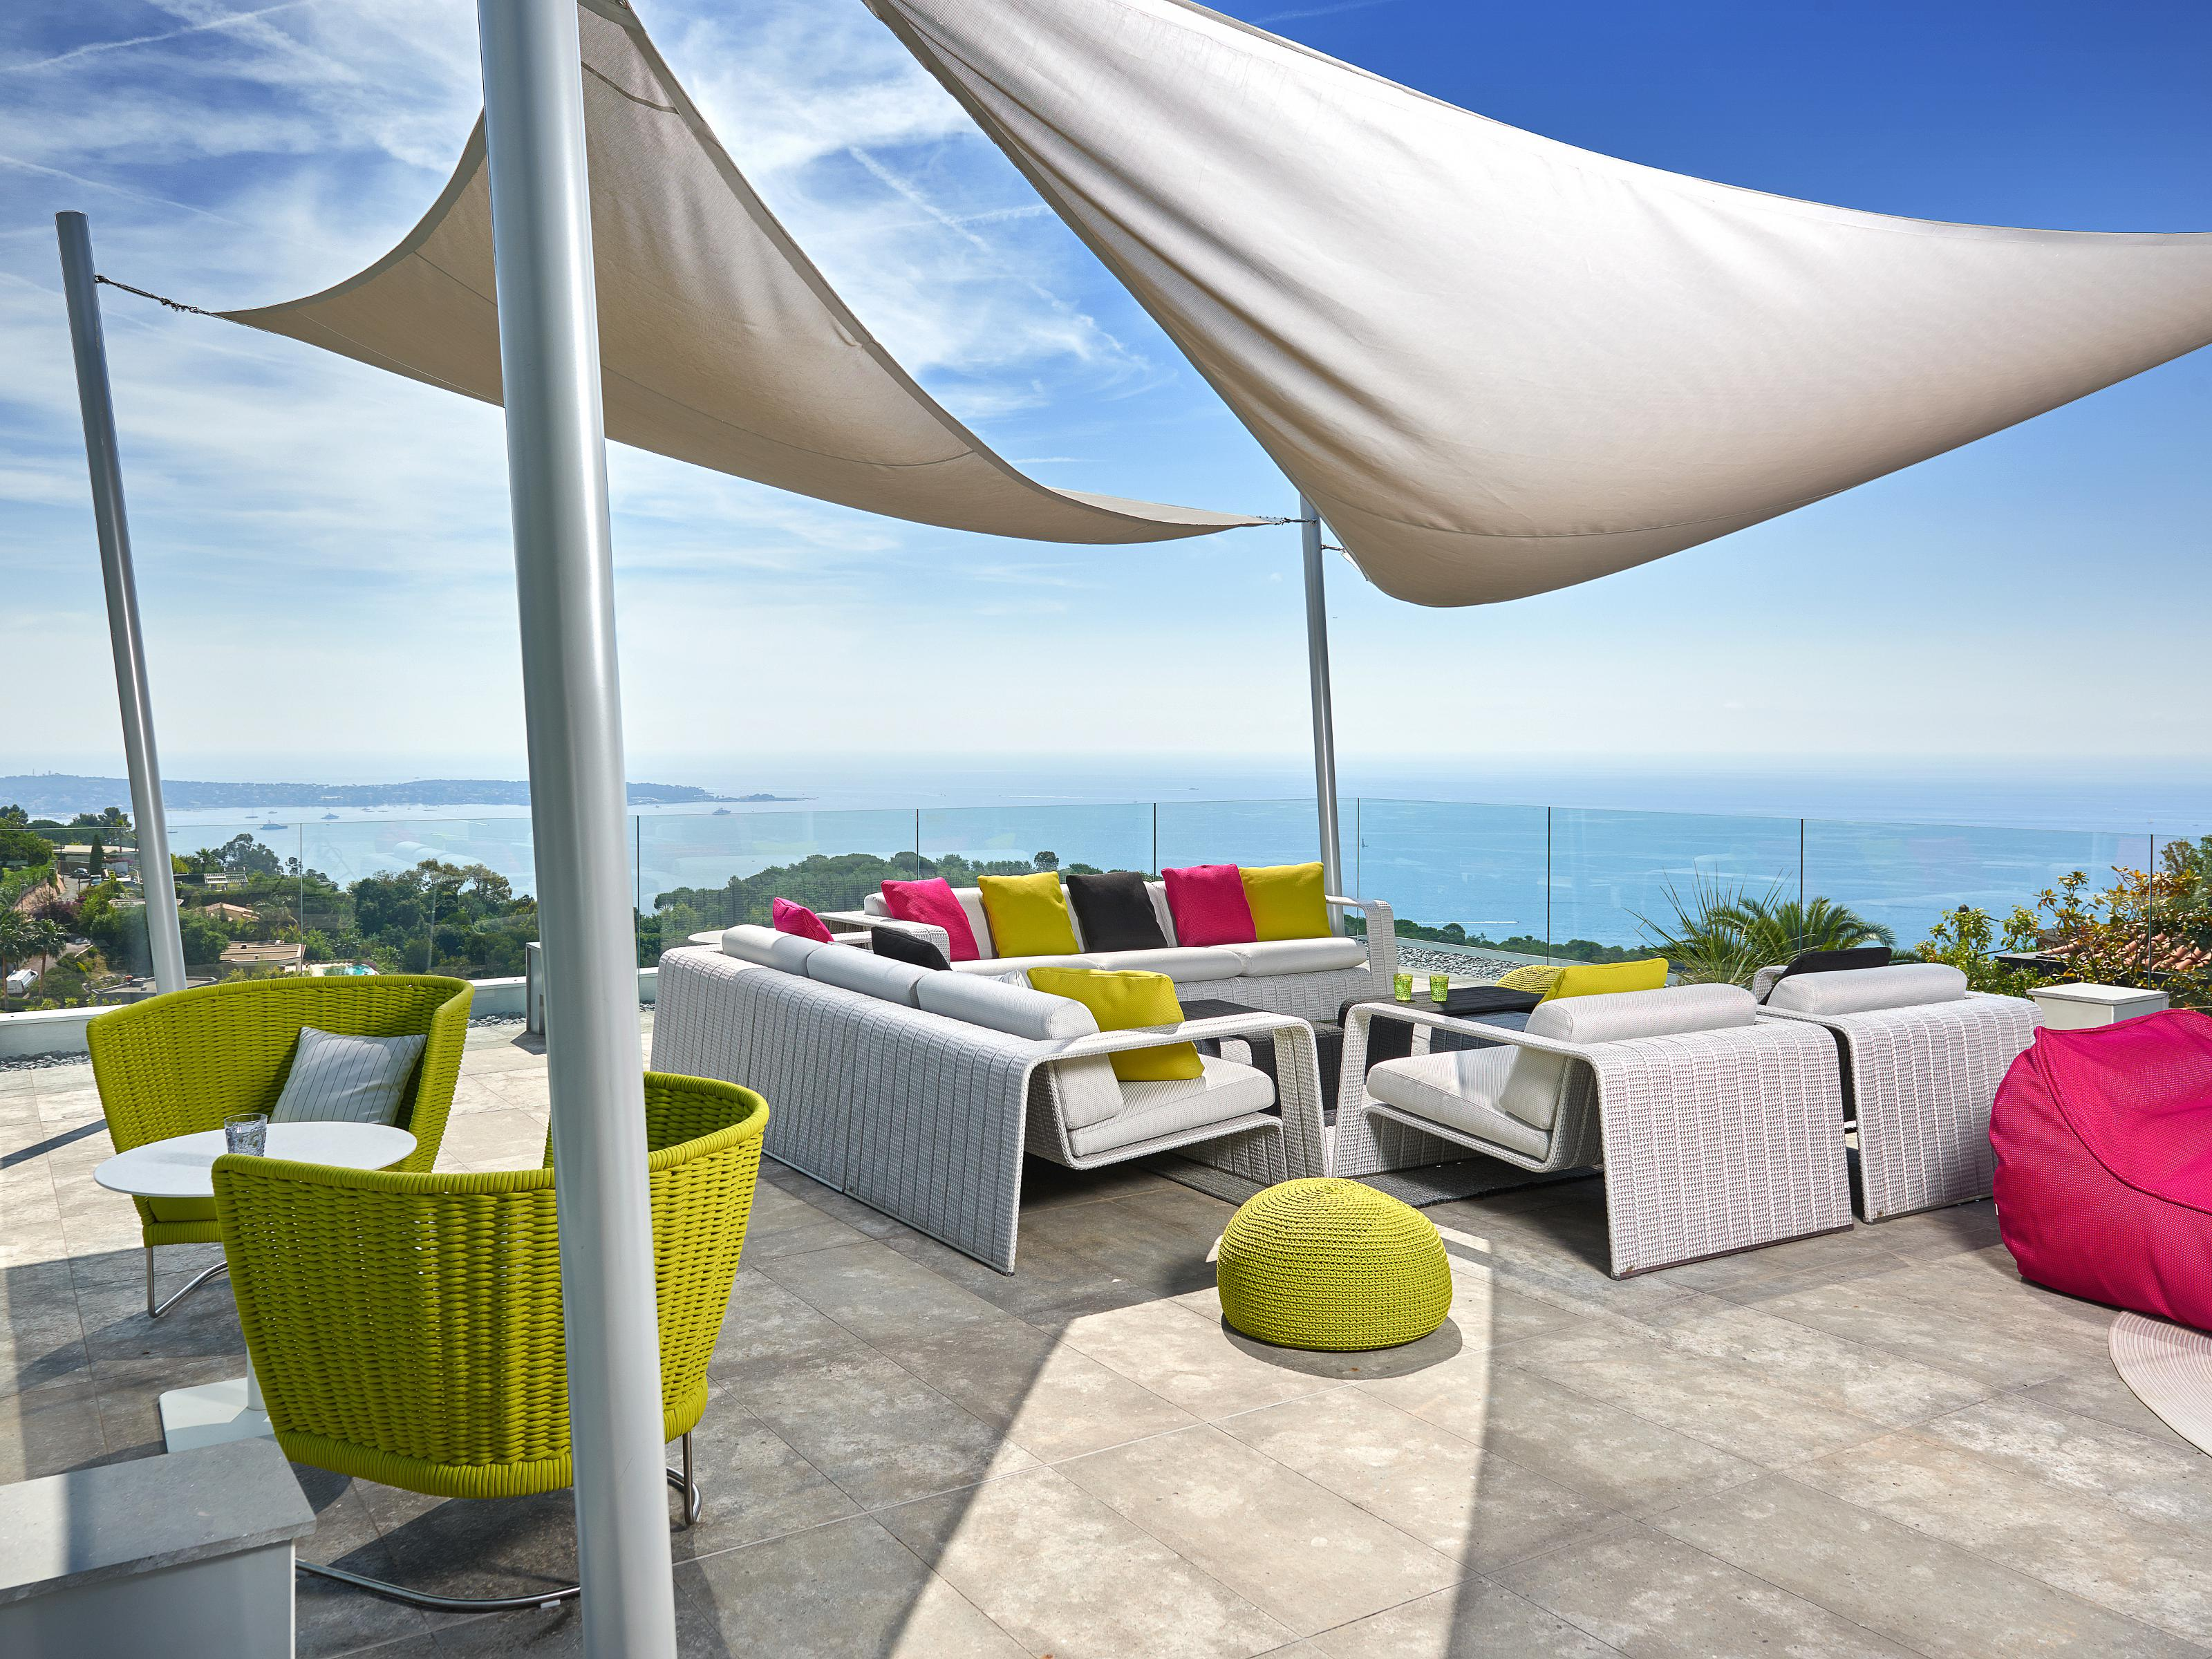 Single Family Home for Sale at Cannes - incredible contemporary villa with extraordinary sea viewS Cannes, Provence-Alpes-Cote D'Azur 06400 France